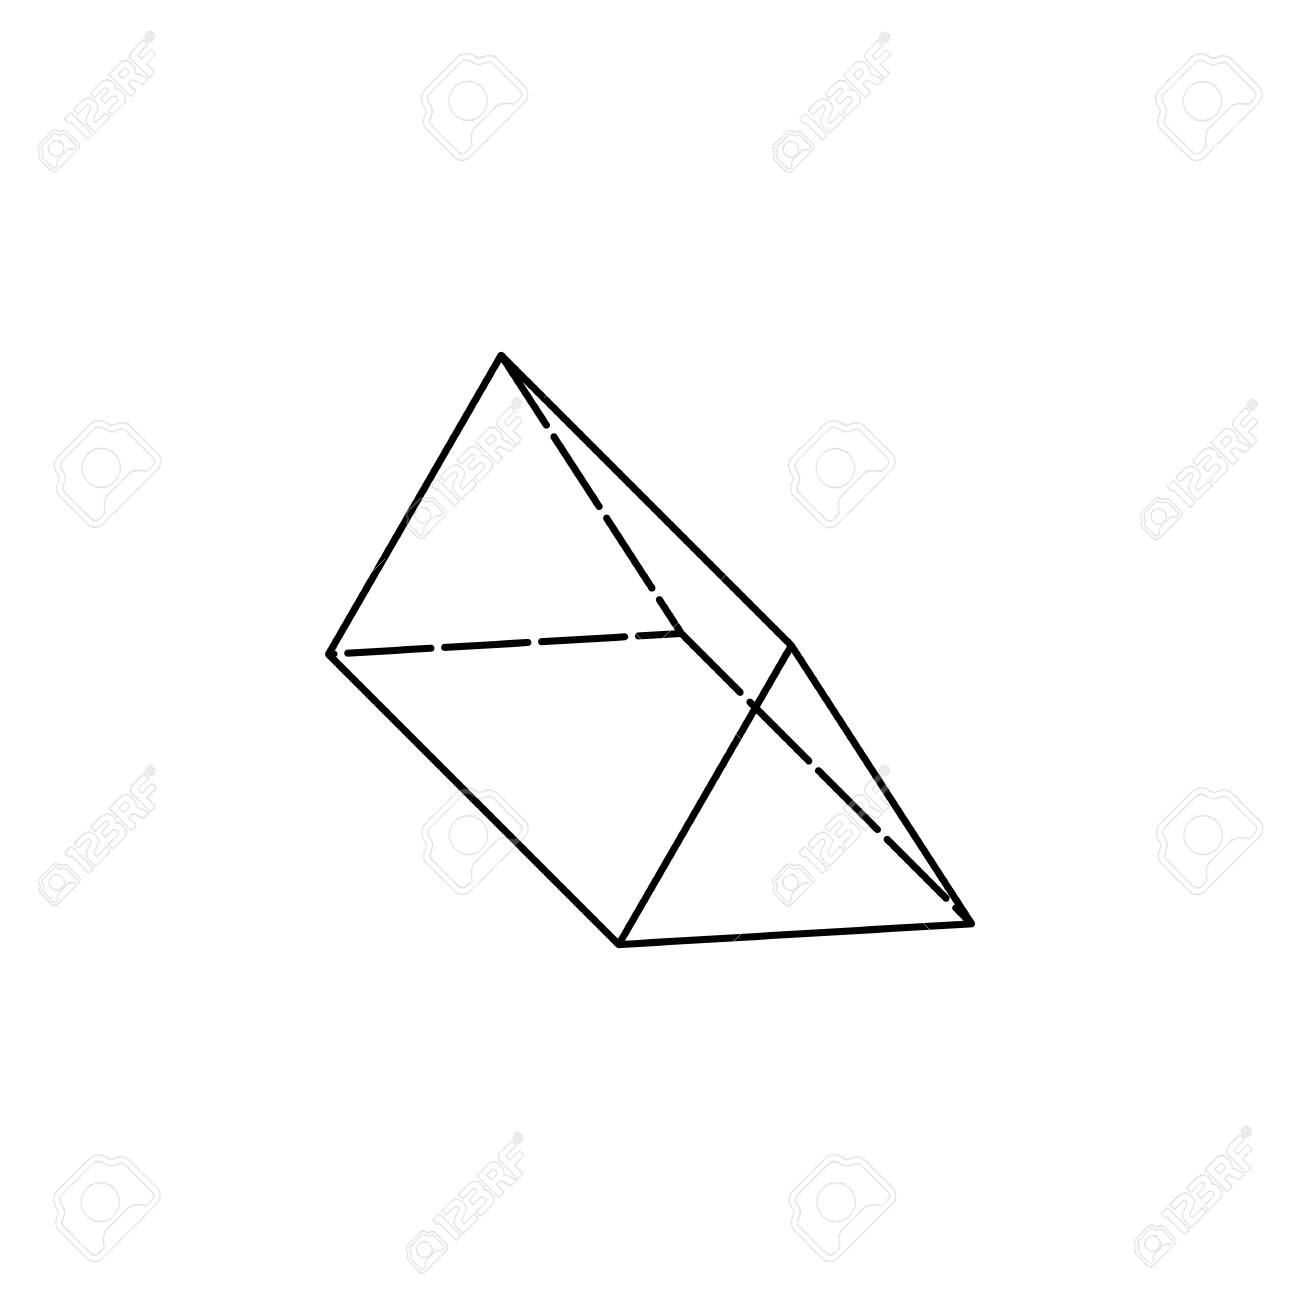 Triangular prism icon, geometric figure element for mobile concept...